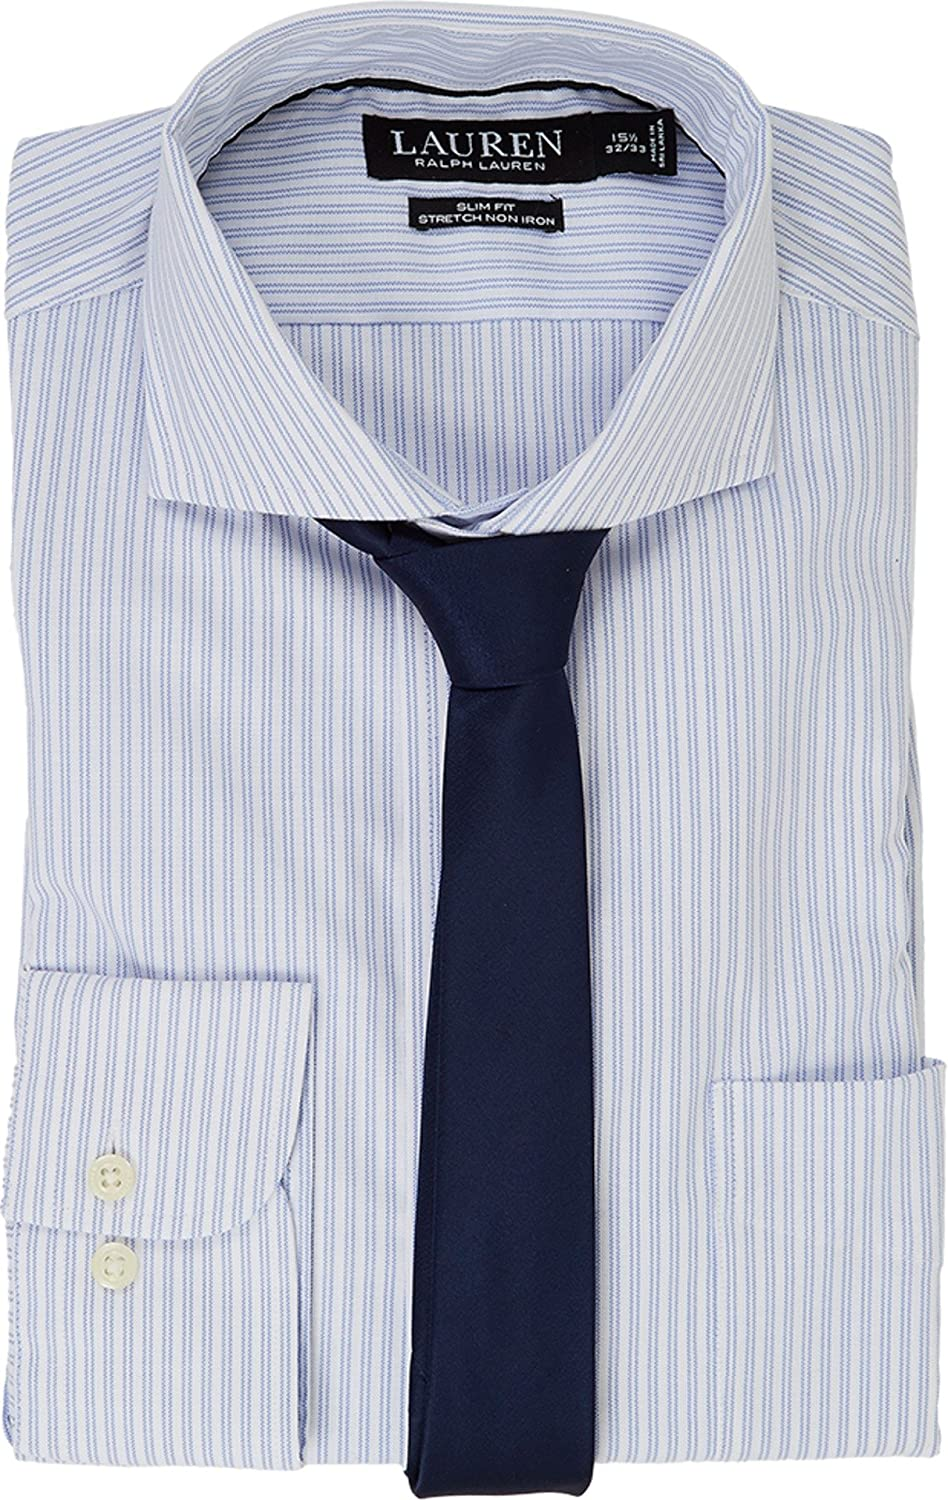 LAUREN RALPH LAUREN Mens Stretch Slim Fit Pinpoint English Spread Collar with Pocket Dress Shirt White//Regent Blue Button-up Shirt